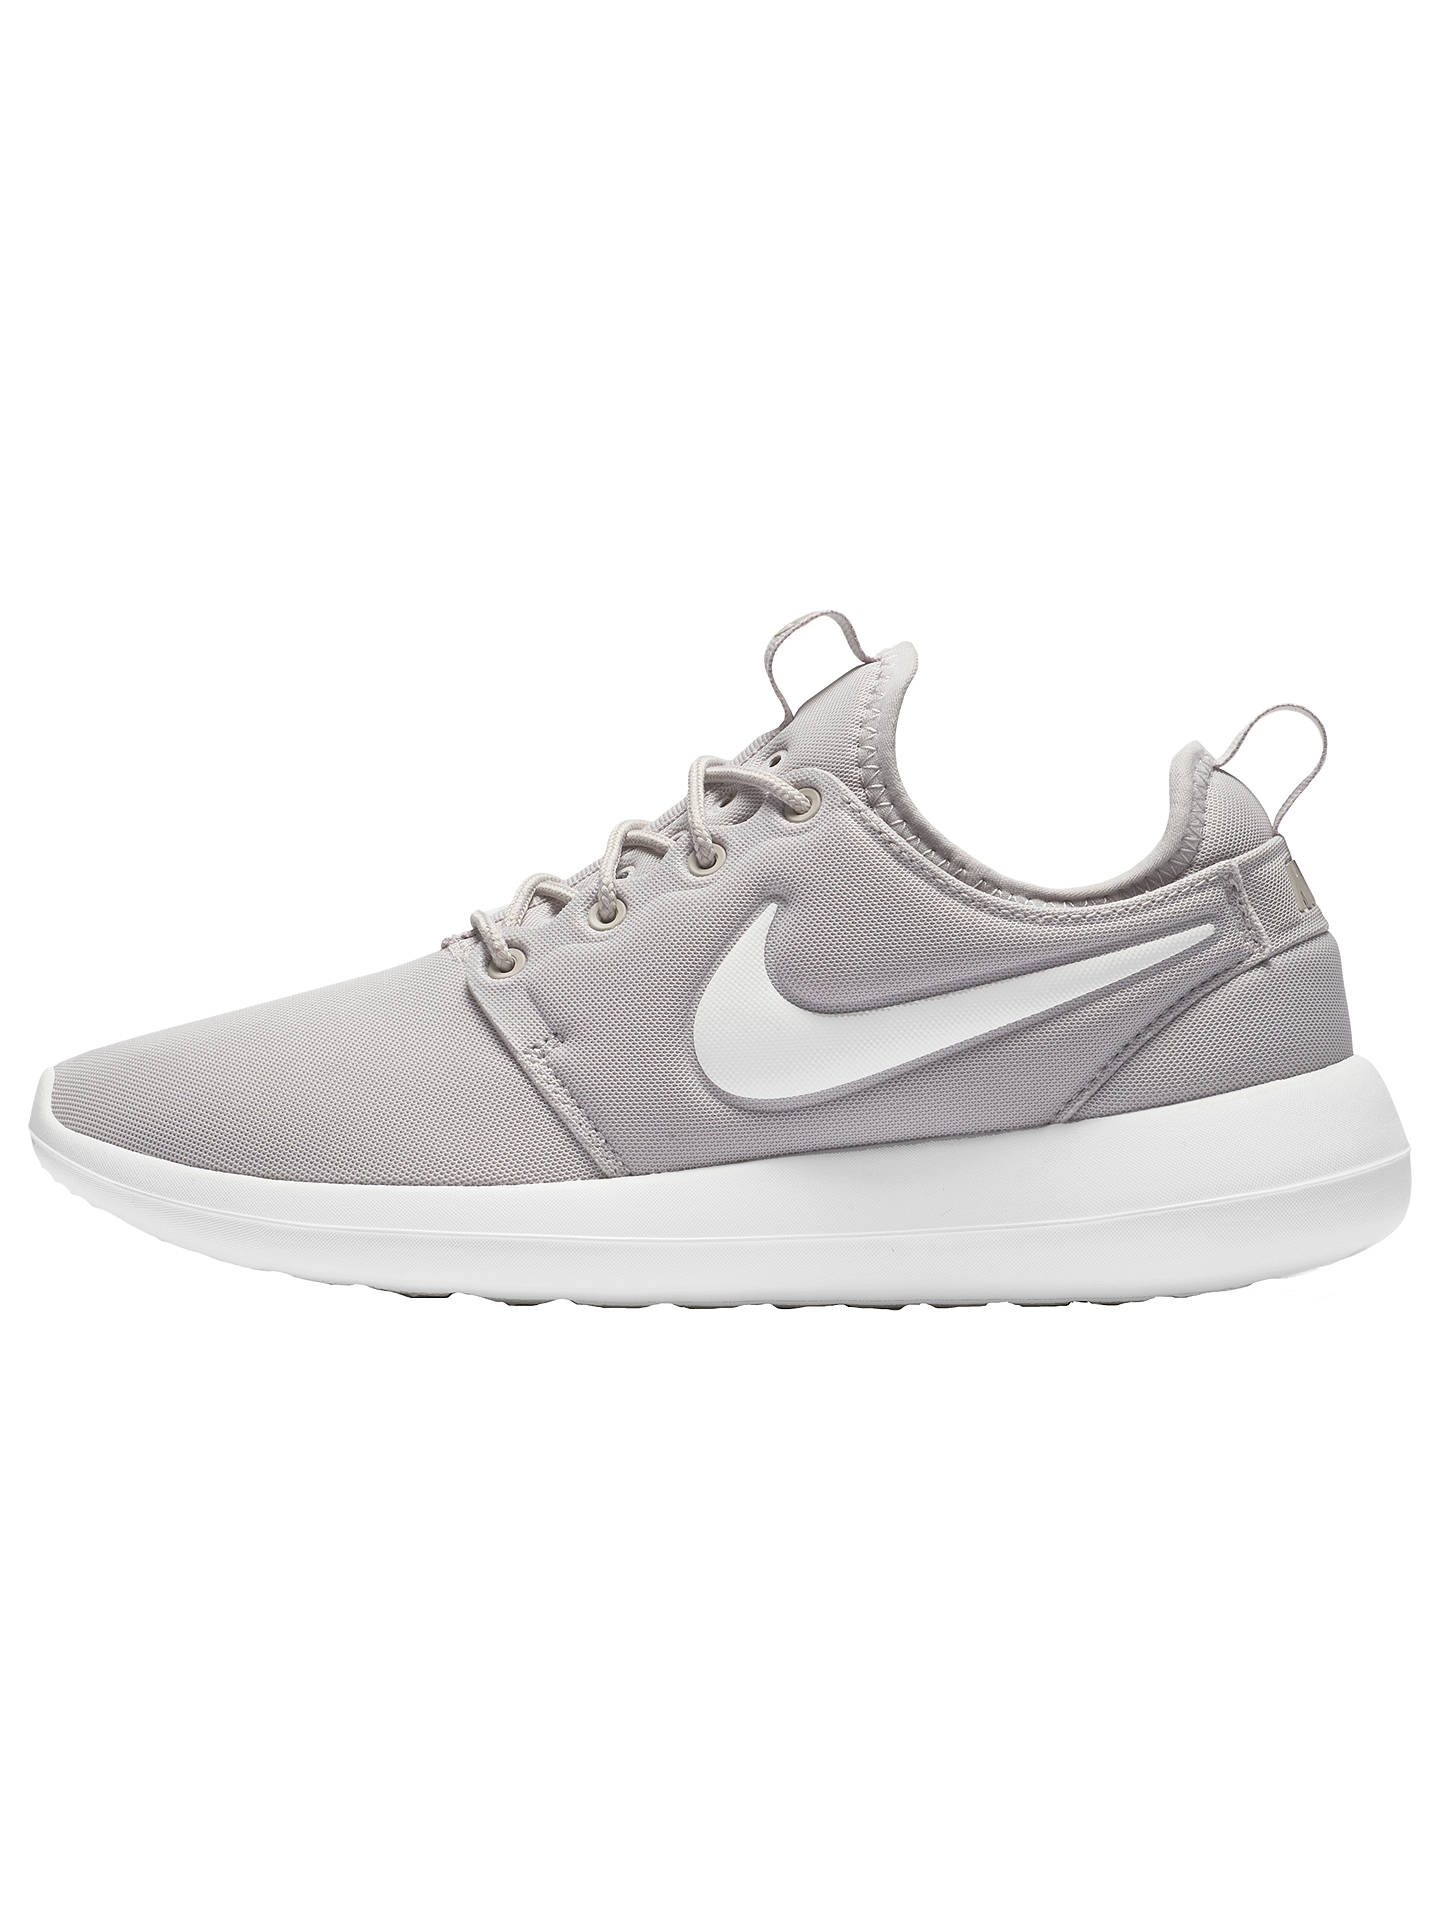 aa50a3b06 Buy Nike Roshe Two Women's Trainers, Grey, 4 Online at johnlewis. ...